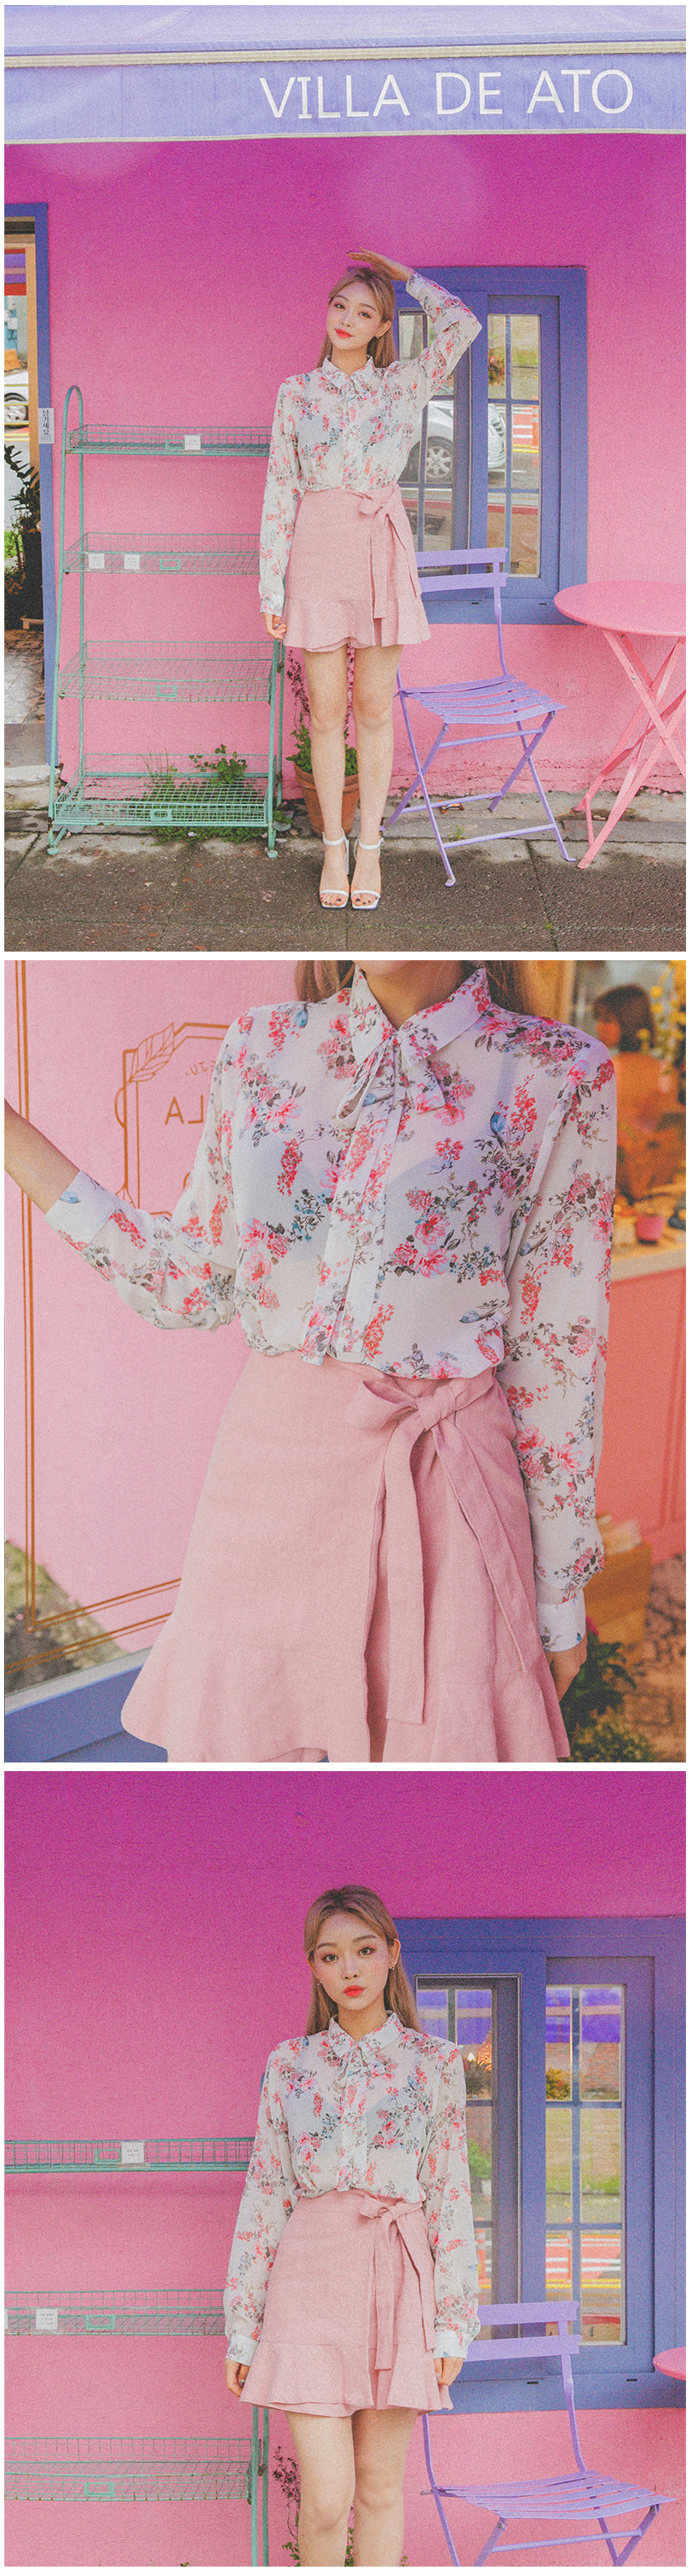 //cdn.nhanh.vn/cdn/store/29770/psCT/20181010/9452006/CHUU_By_My_Side_Flower_Blouse_(6).jpg